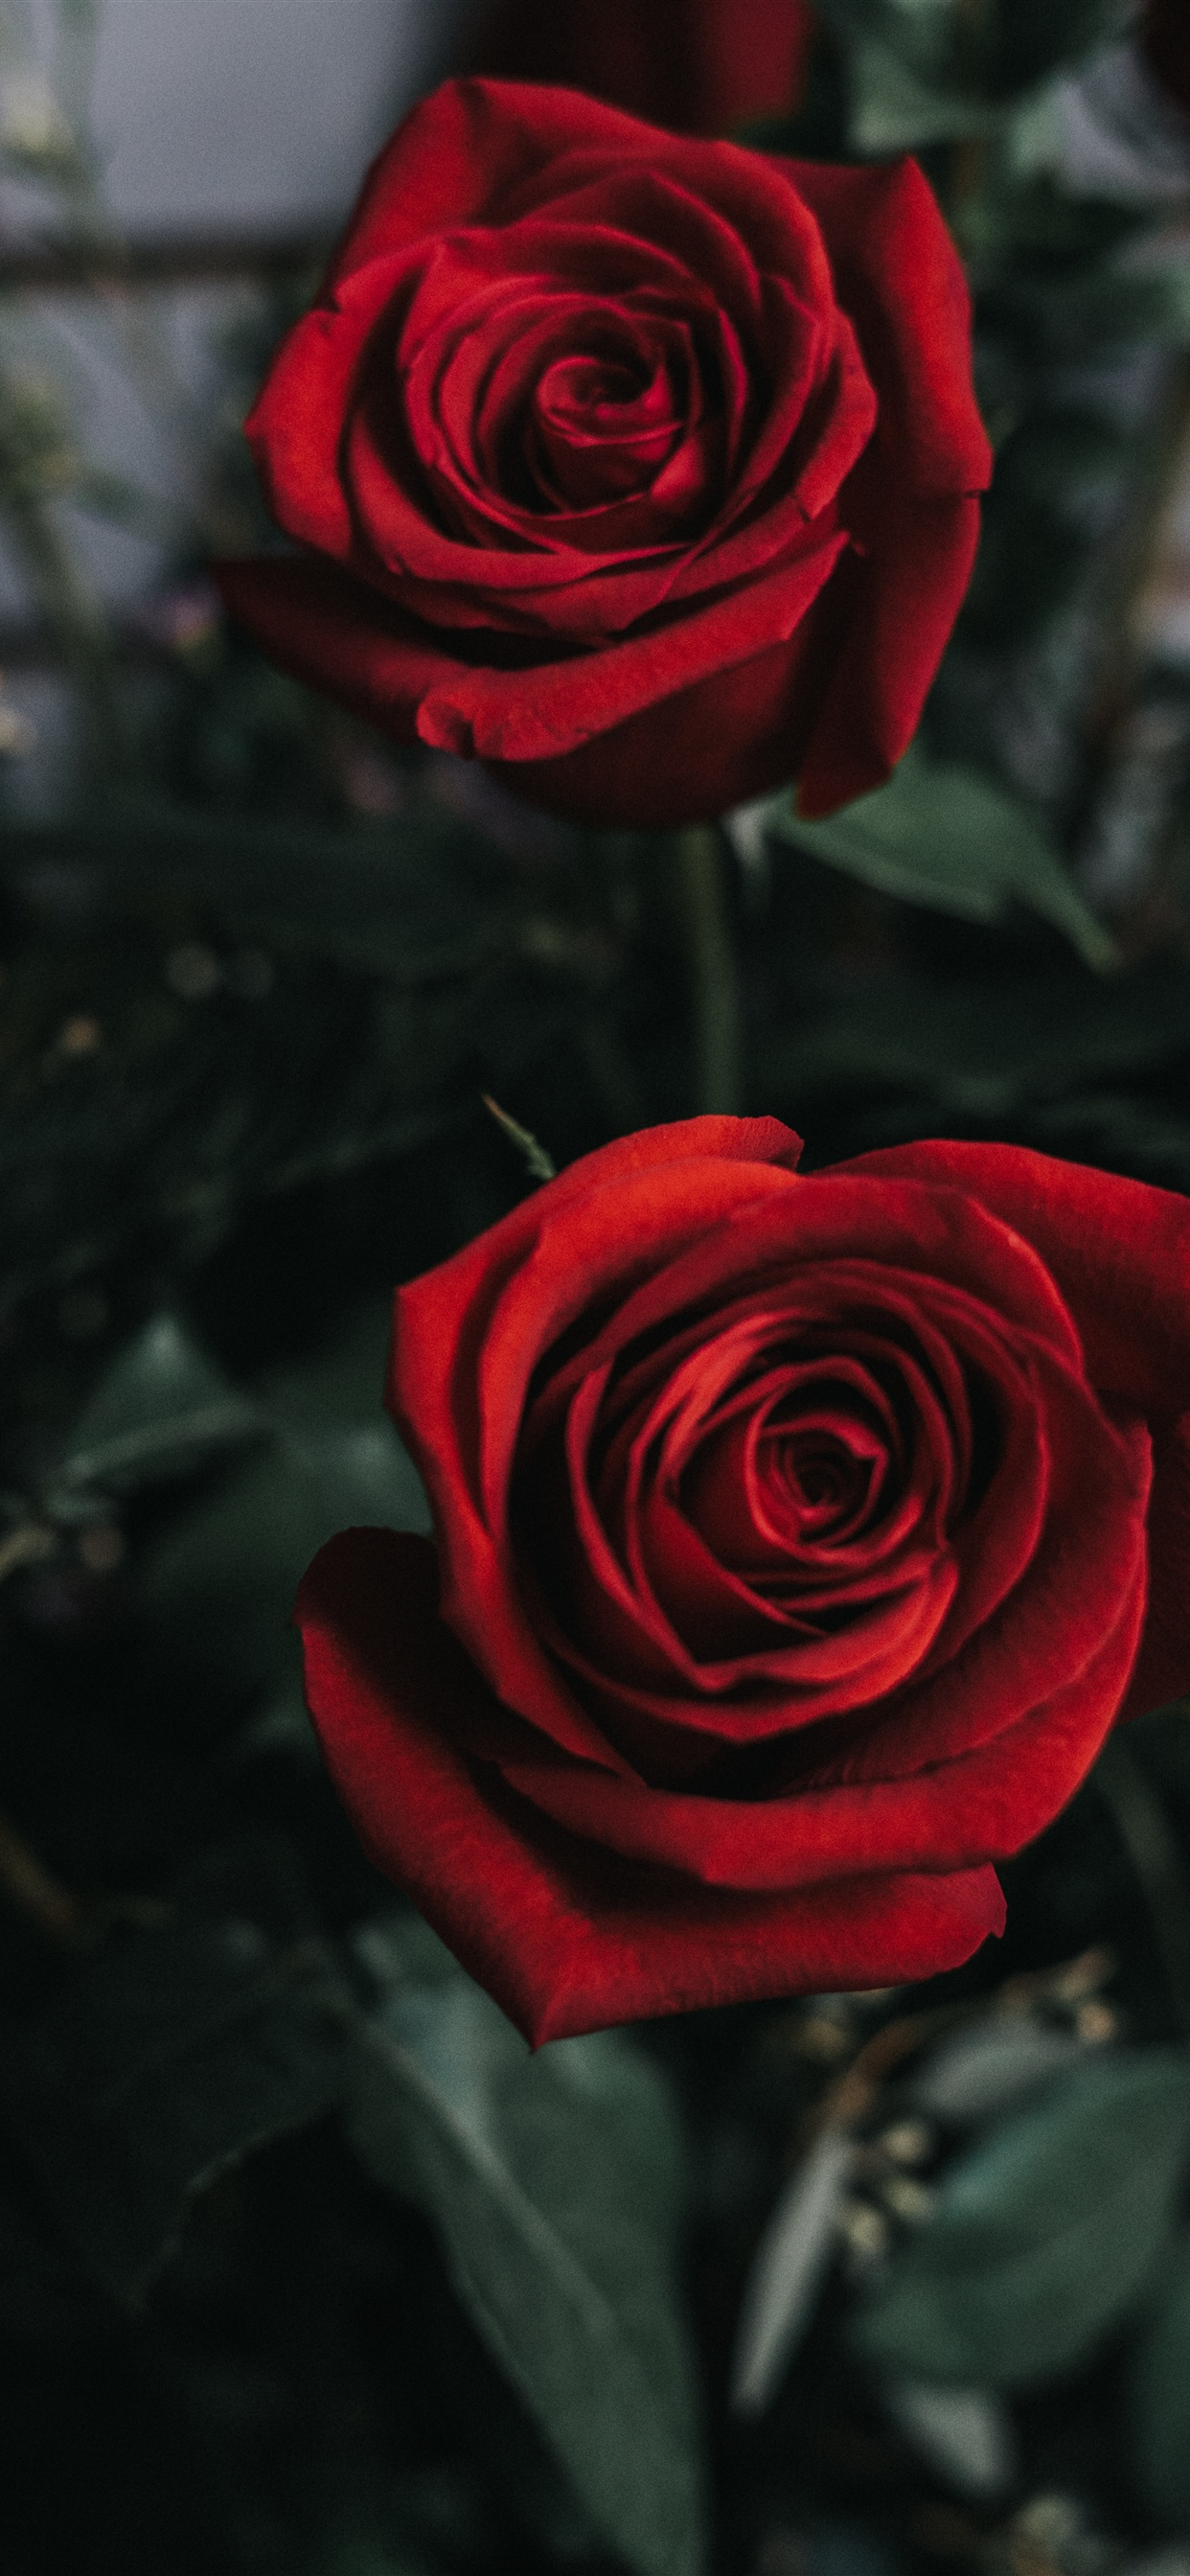 Two Red Roses Flower Photography Iphone Xs Max X 876543gs